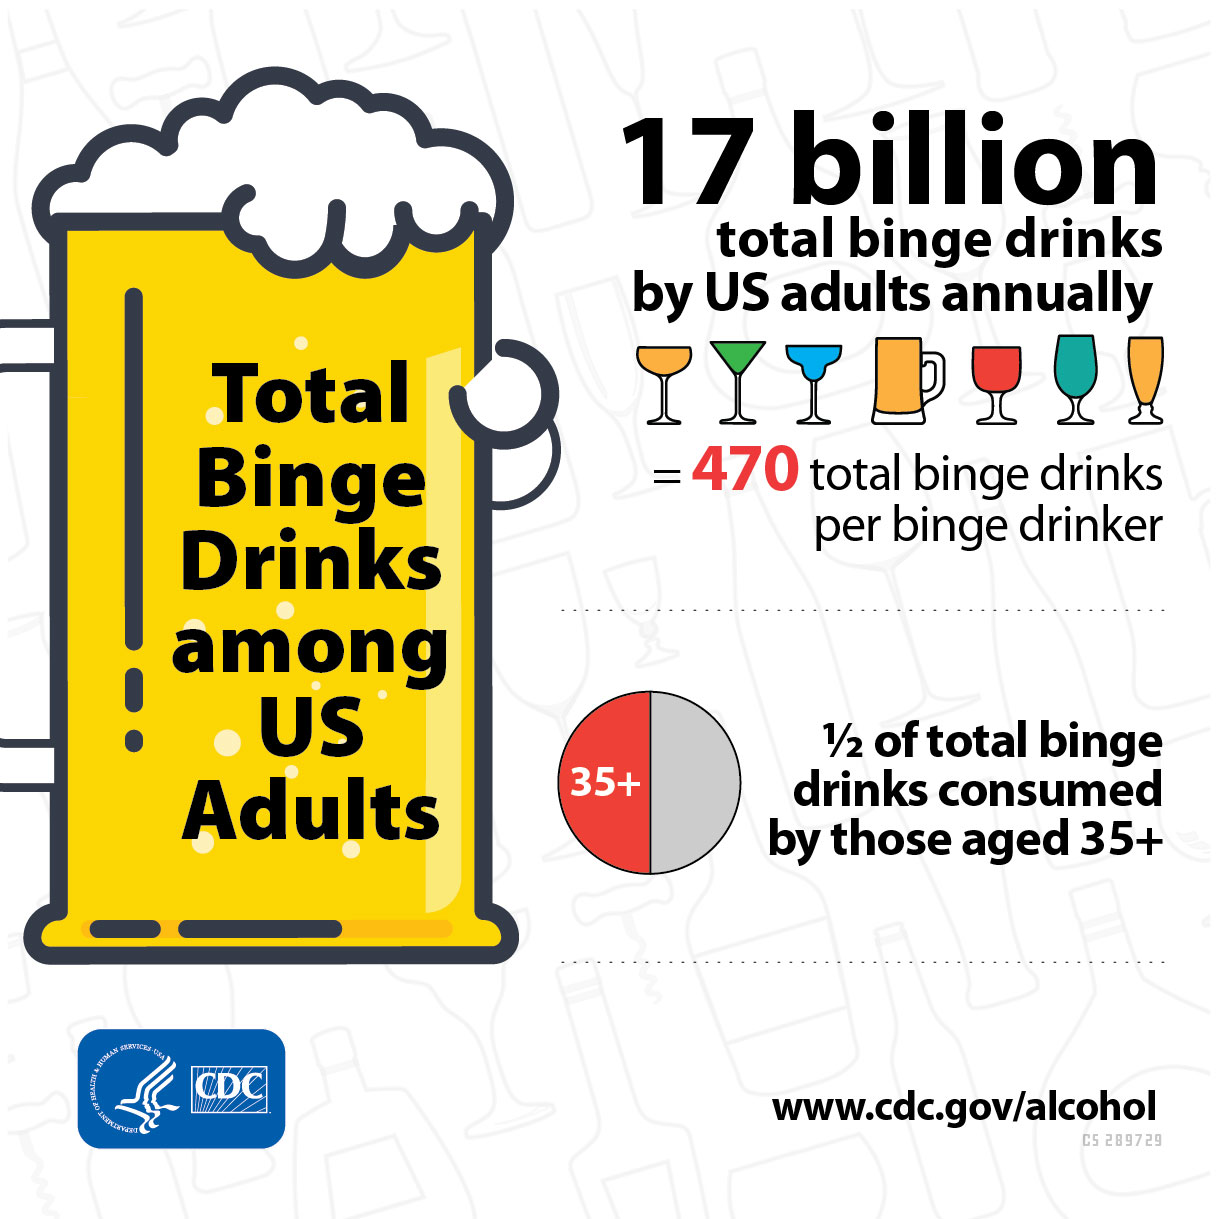 Have Adults A Binges Cdc 17 Year Newsroom Billion U During Online Drinks s